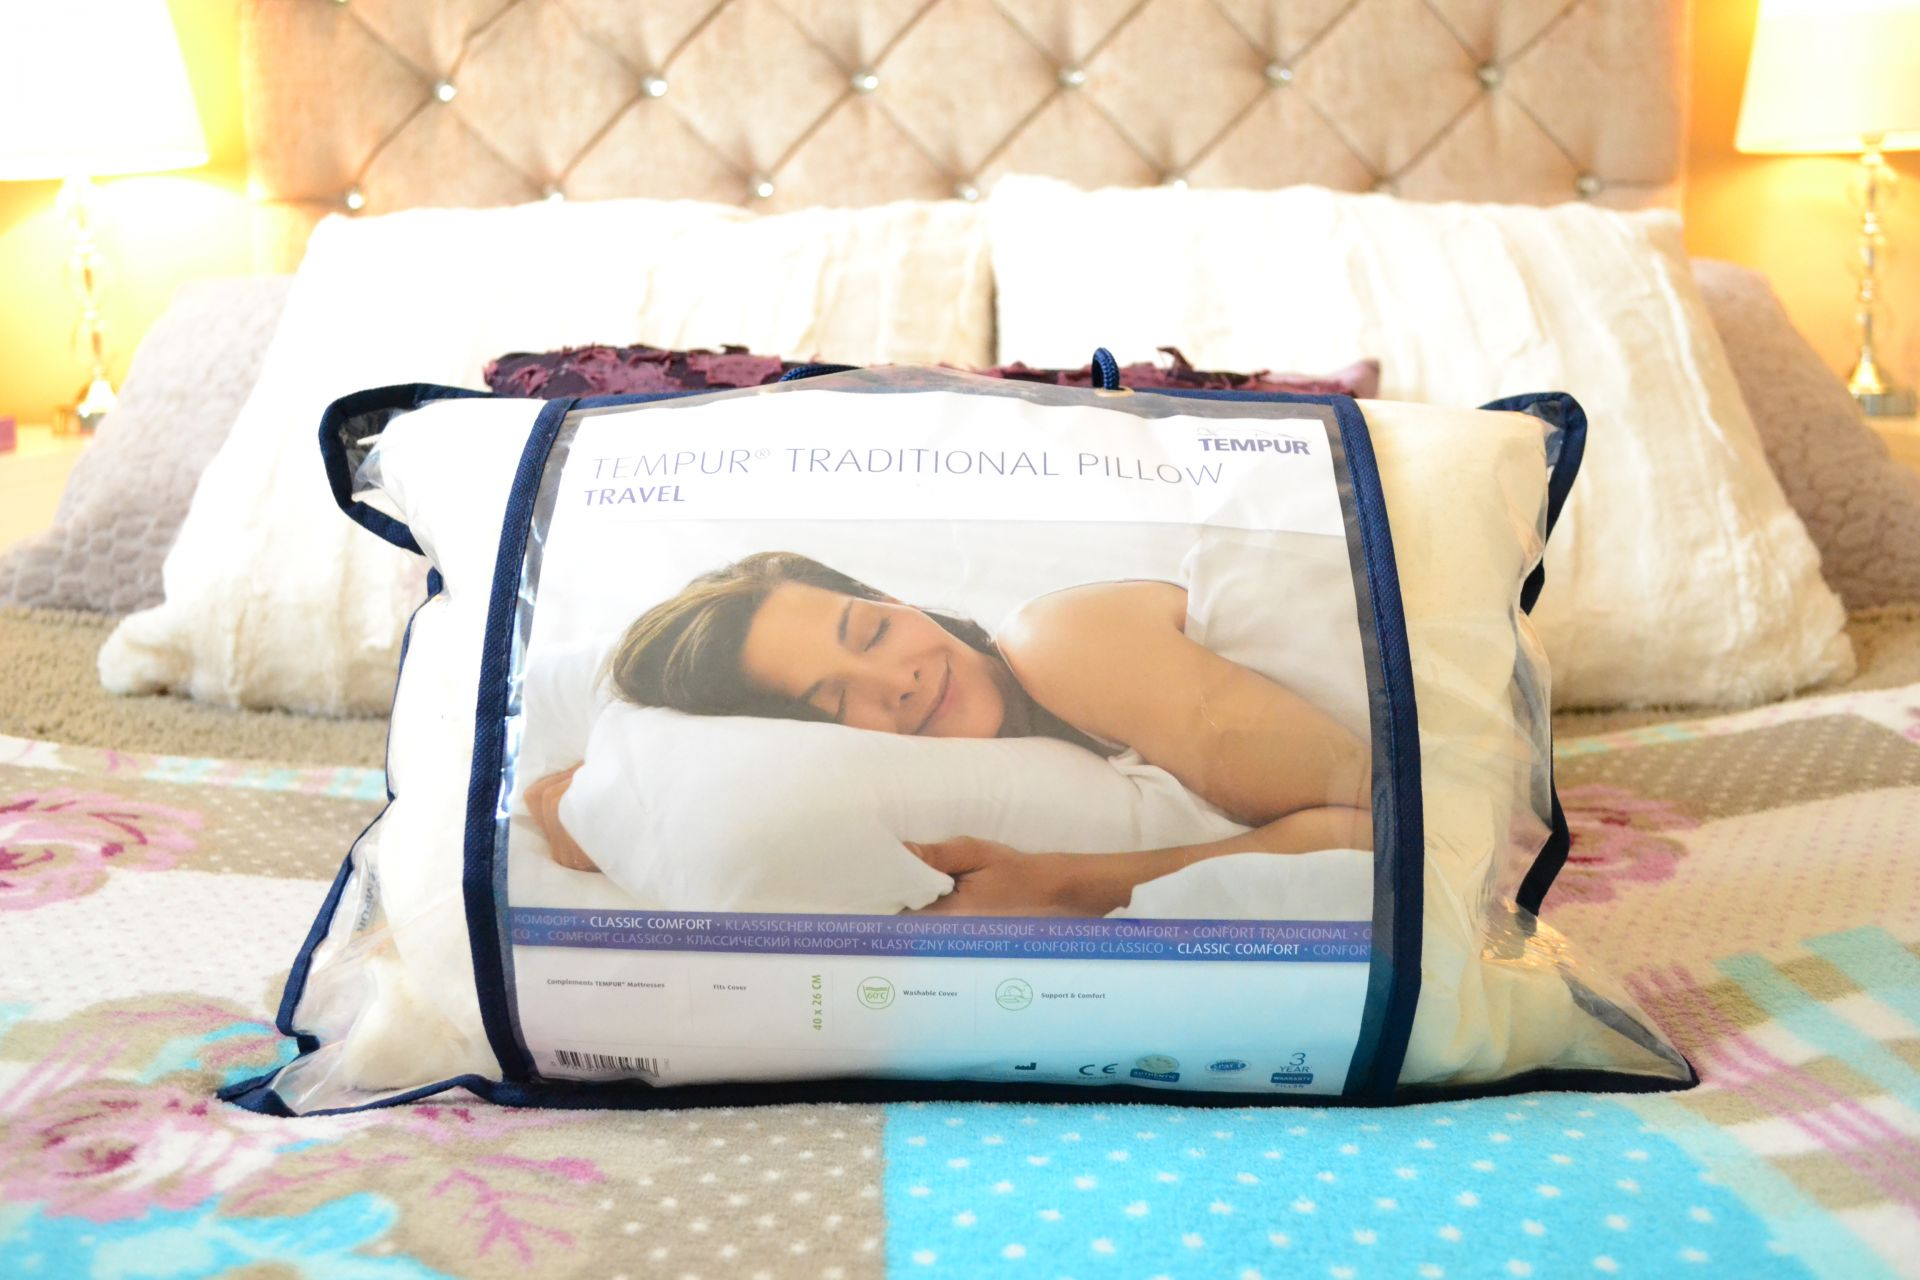 tempur-travel-pillow-review